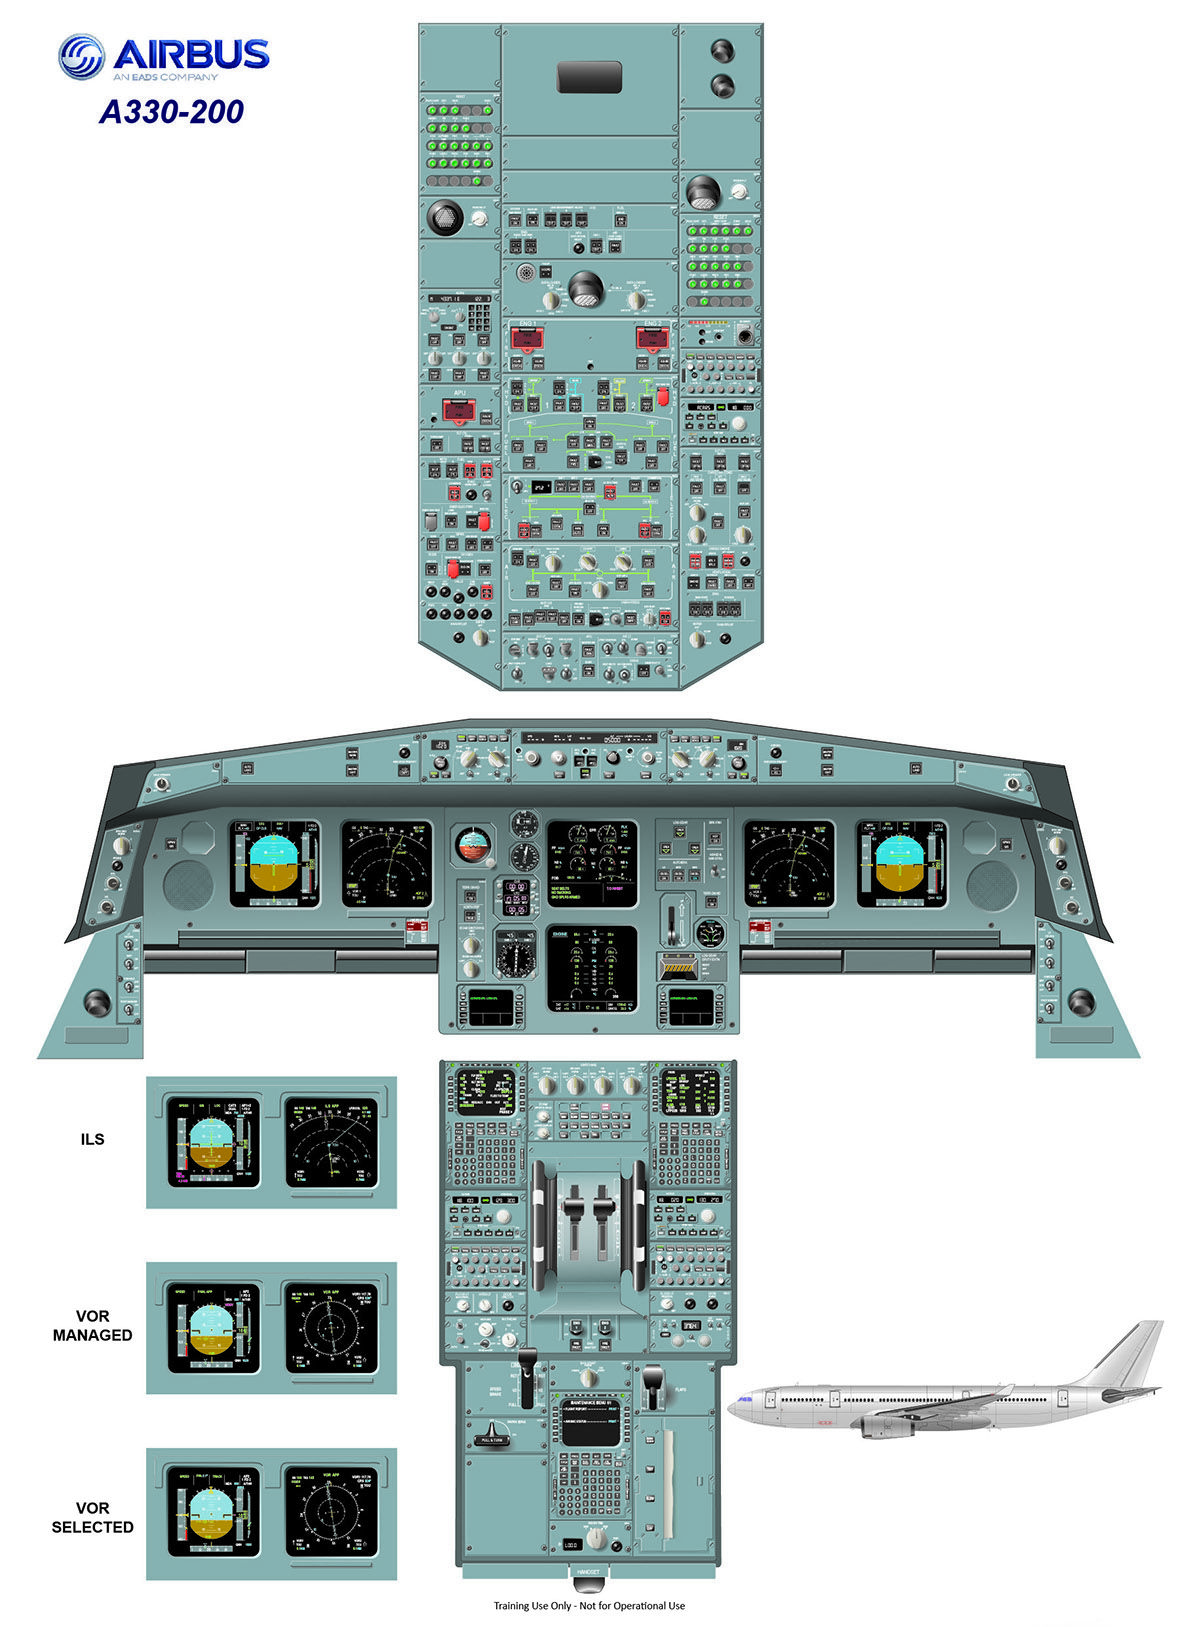 aircraft carrier flight deck diagram 220v dryer plug wiring engine www thebuffalotruck com airbus a330 200 cockpit poster used for training pilots rh pinterest markings shuttle enterprise